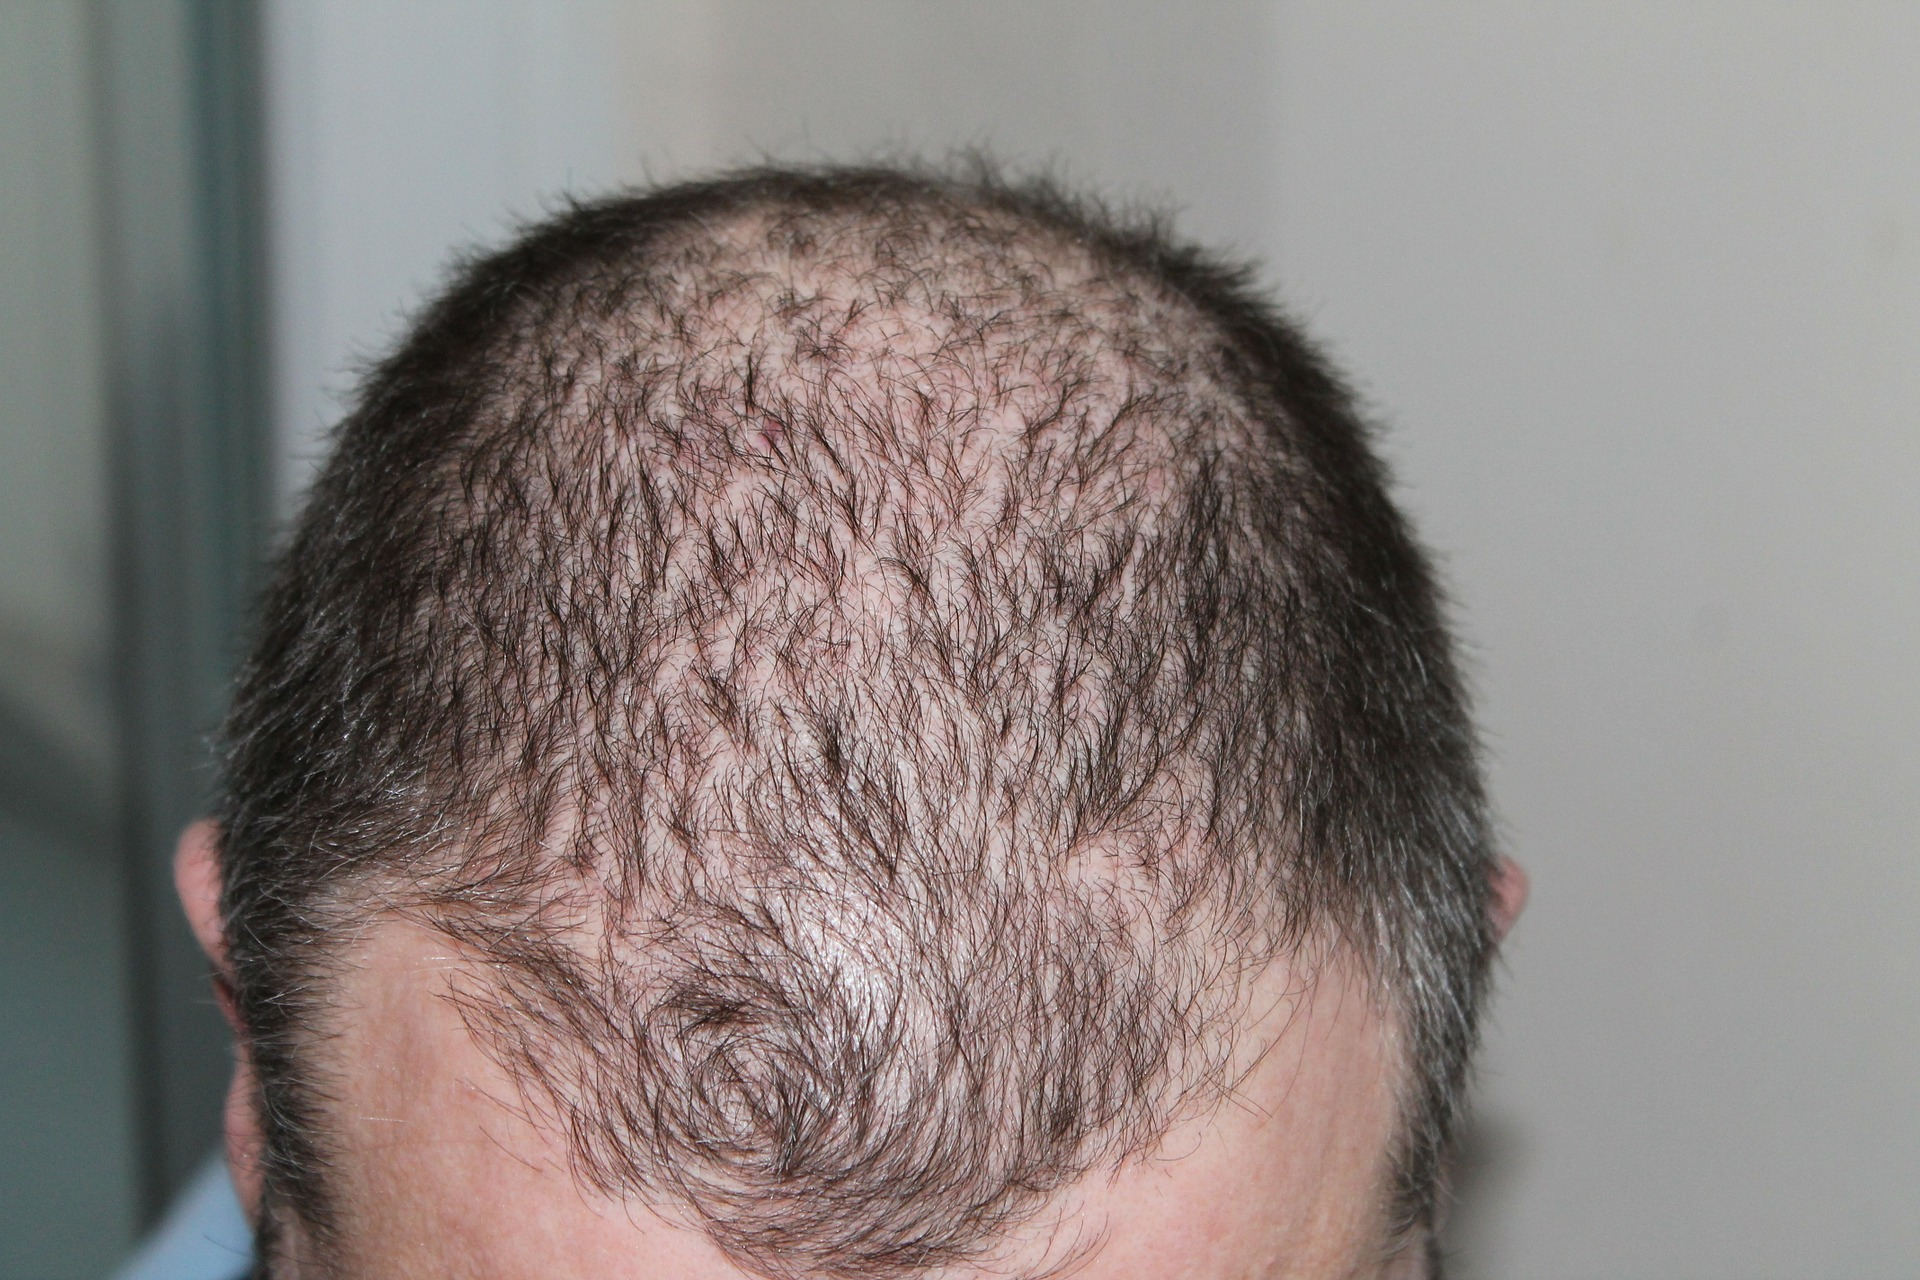 Replicel says hair loss therapy is safe, with glimmers of